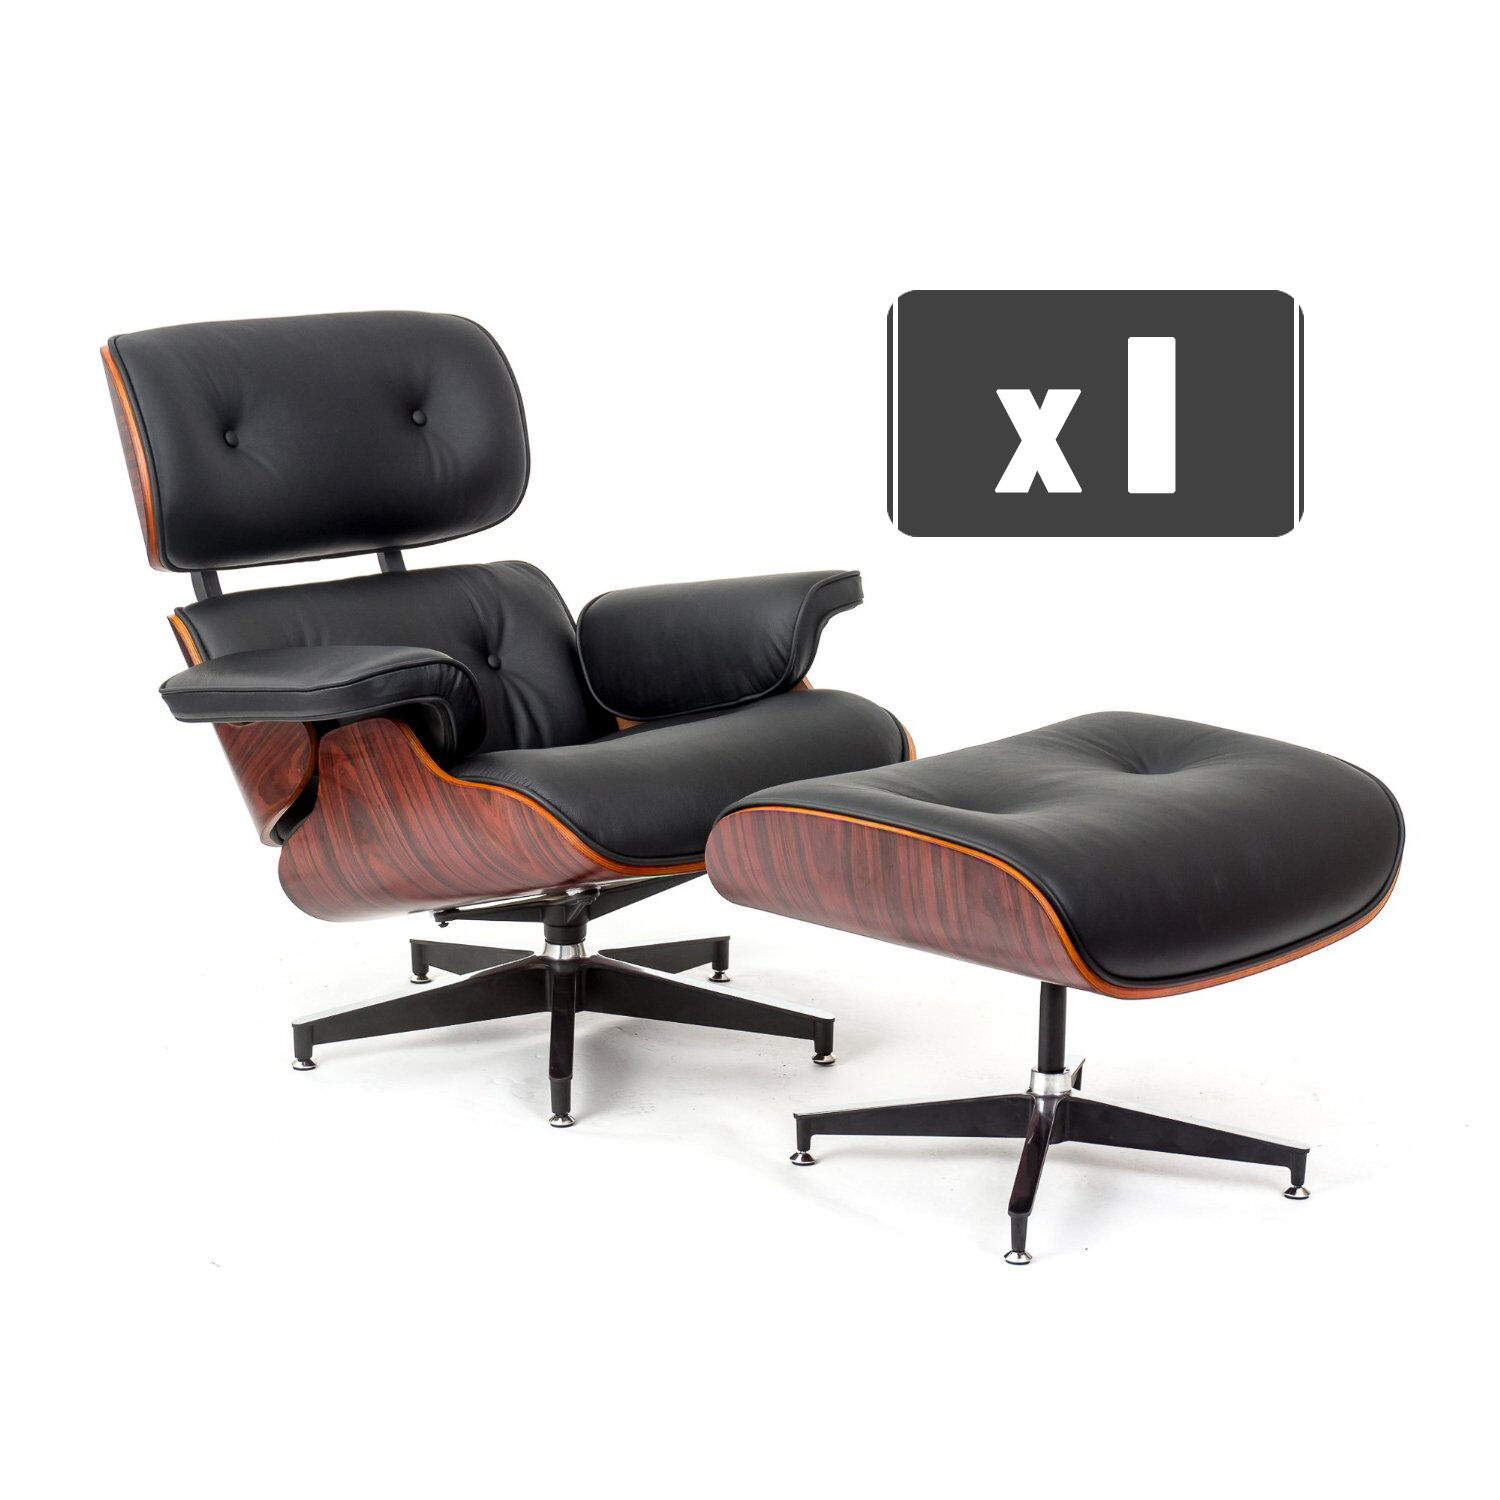 Best Eames Lounge Chair Replica Replica Charles Eames Lounge Chair & Ottoman In Black